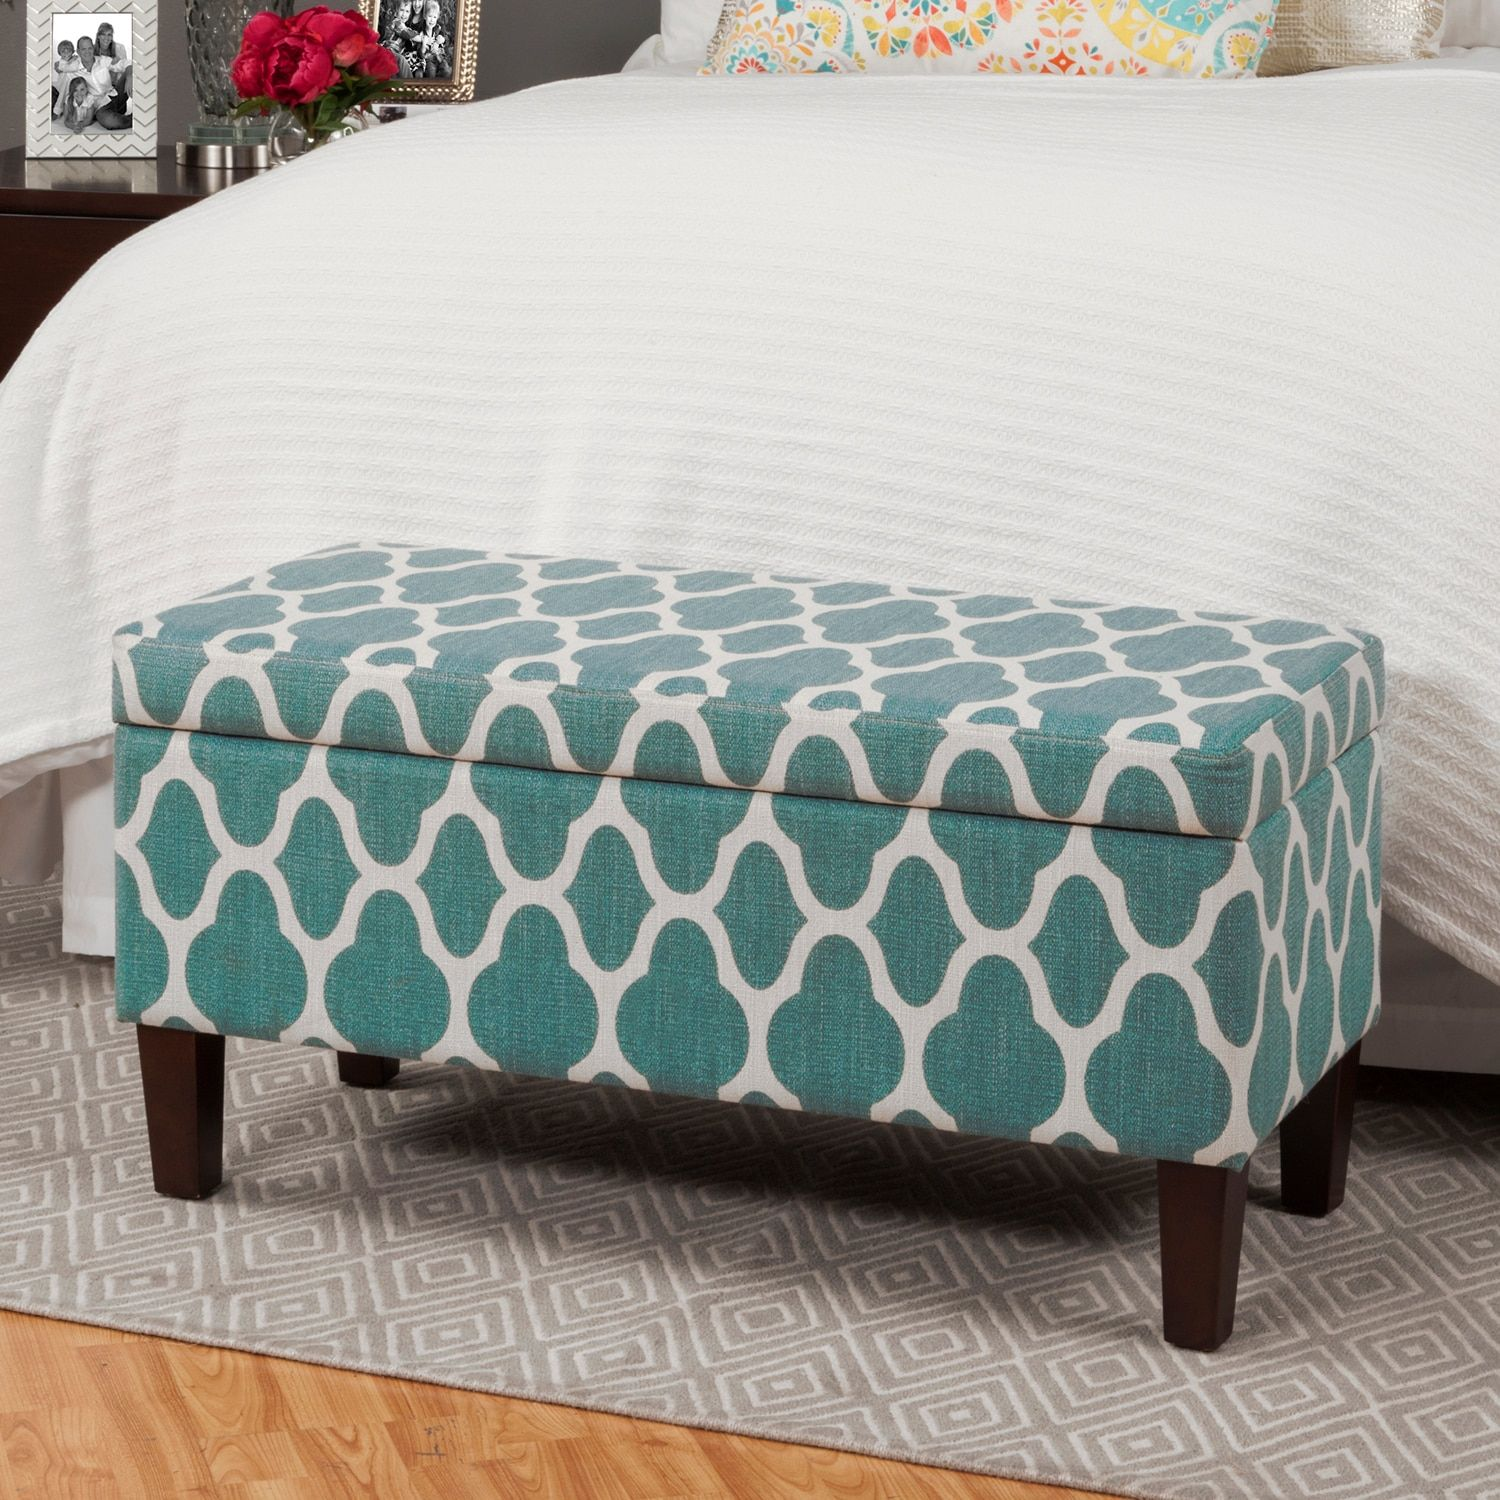 Large Teal Blue Decorative Storage Ottoman Products